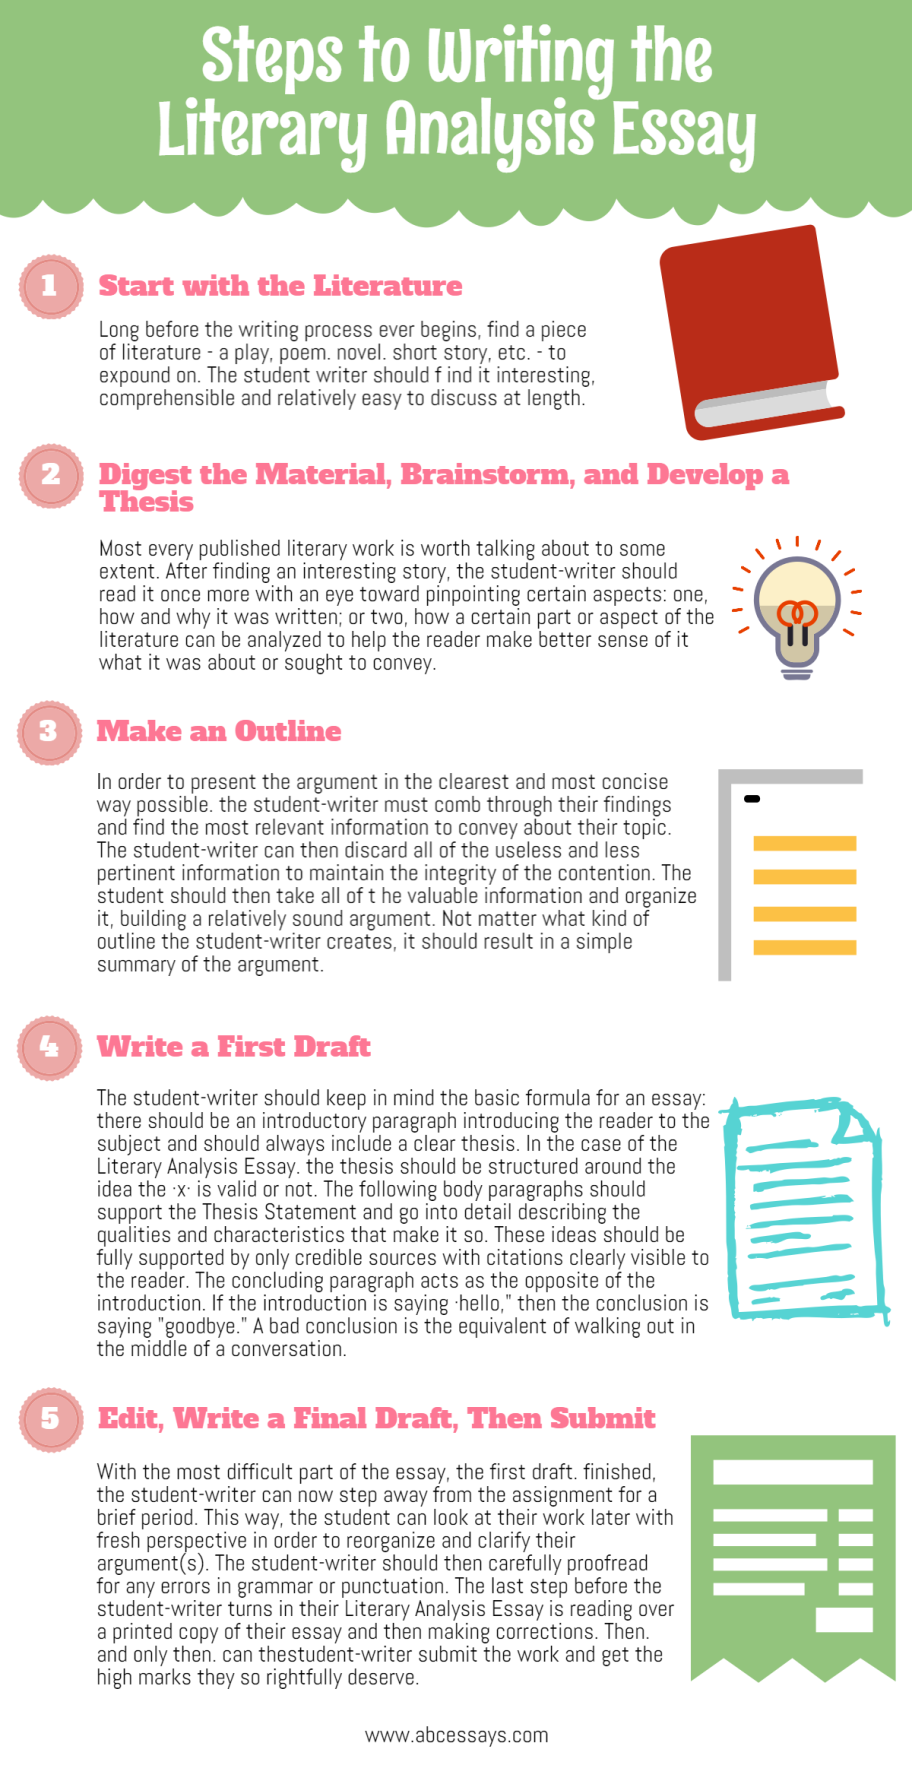 steps before writing an essay The 5-step writing process: prewriting identifies everything you need to do before you sit down to start your rough draft find your idea ideas are all around you free writing means writing every idea that comes into your head.